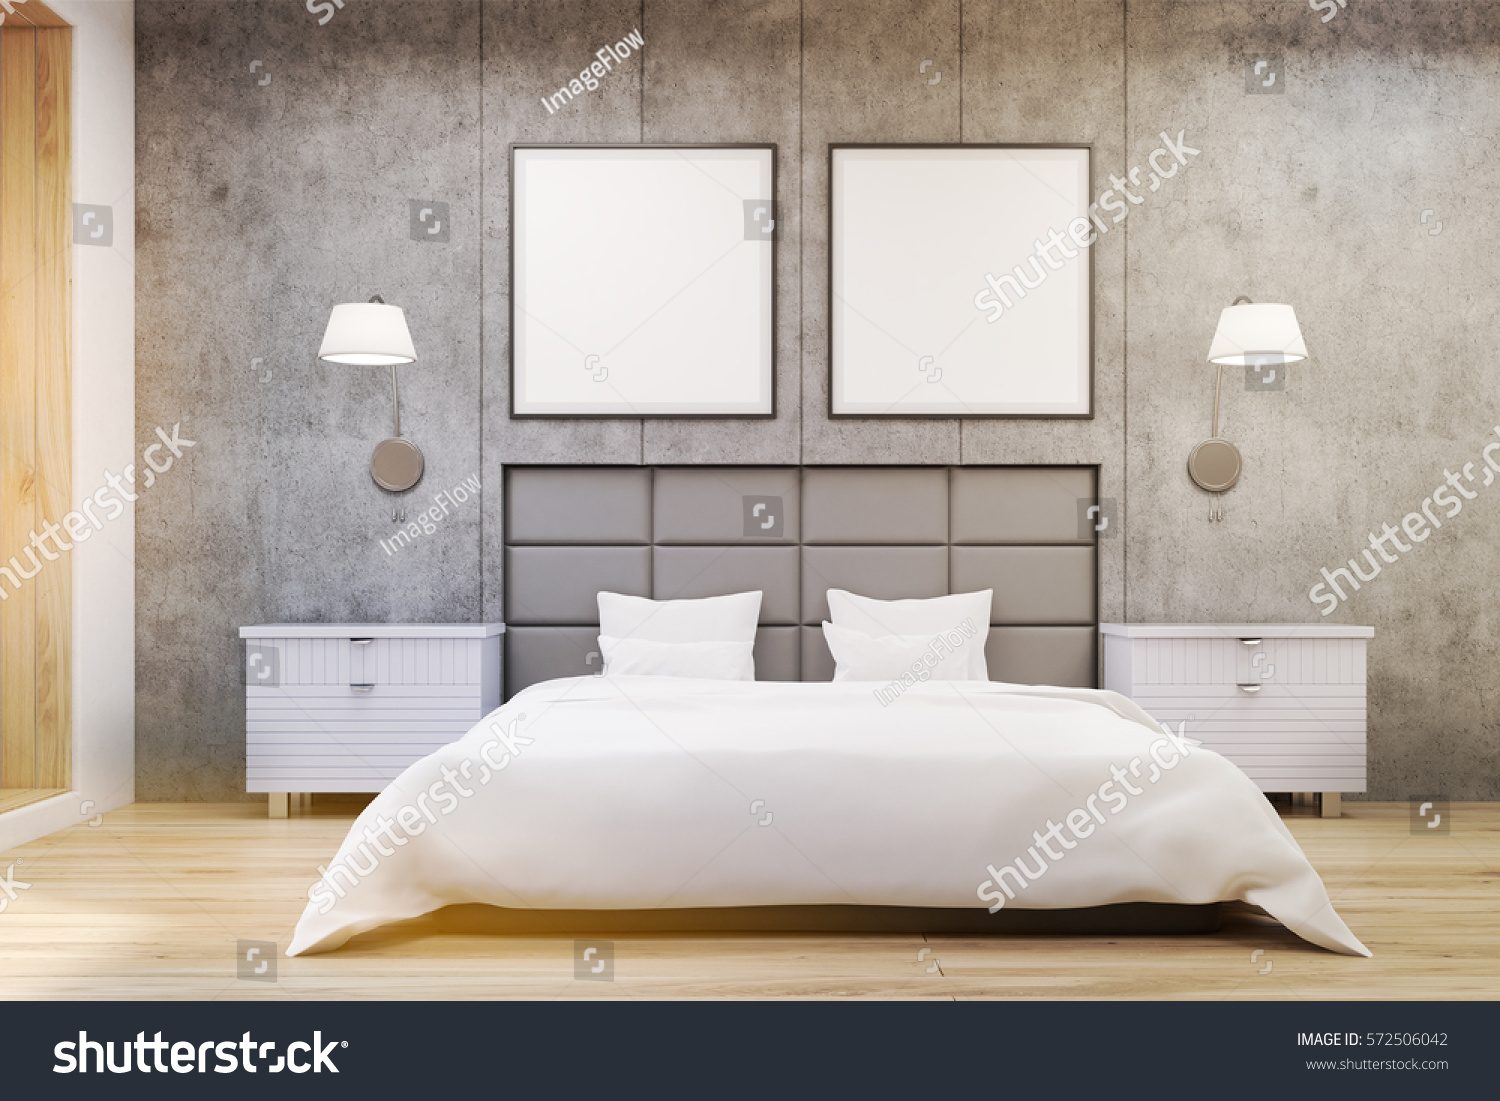 96+ Affordable Wall Murals Posters For Sale At Allposters ...